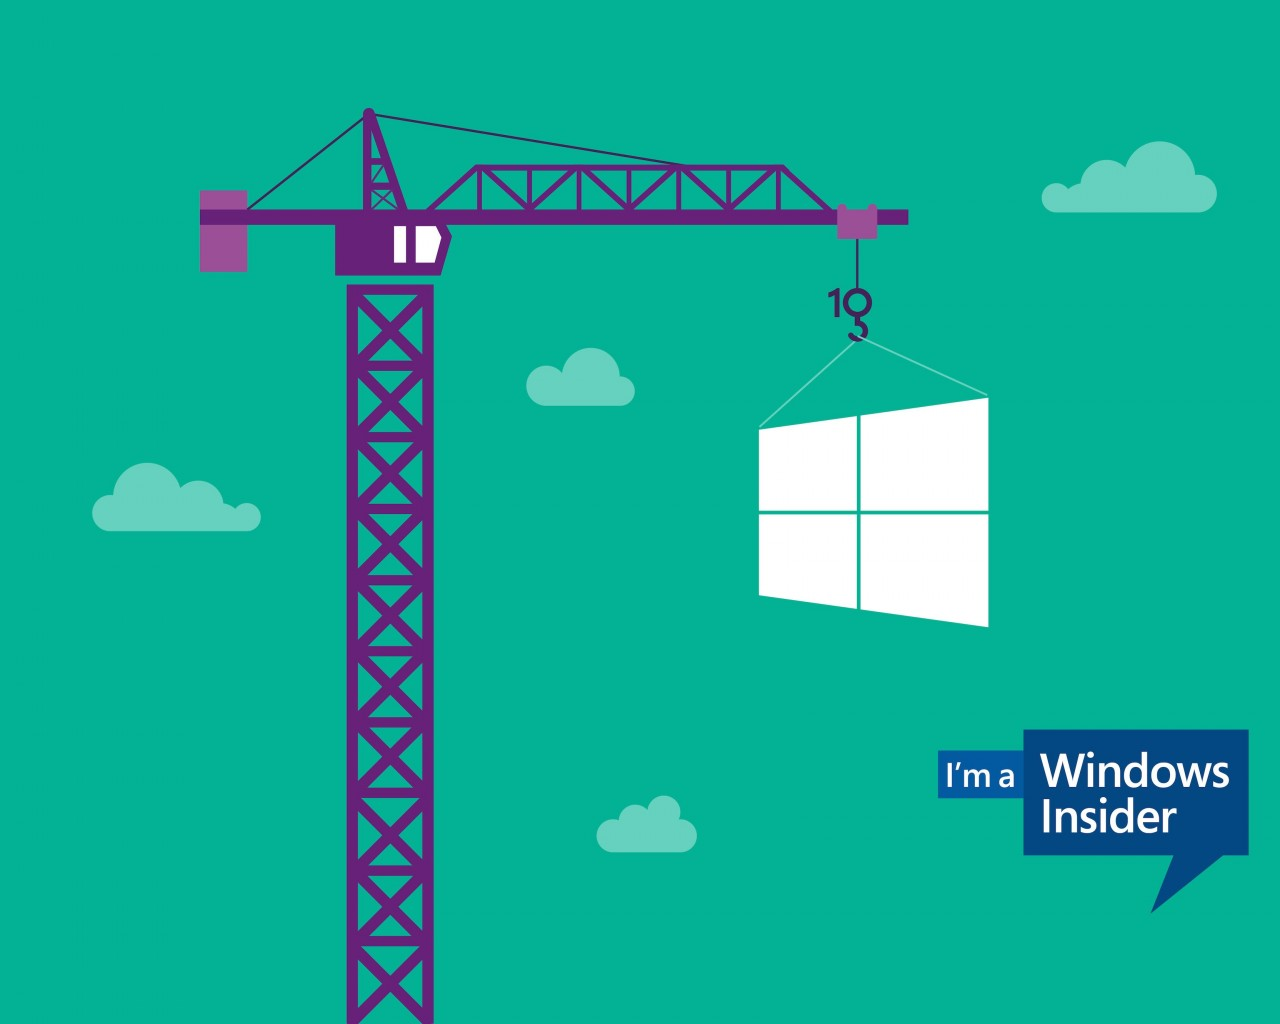 Windows Insider Wallpaper for Desktop 1280x1024